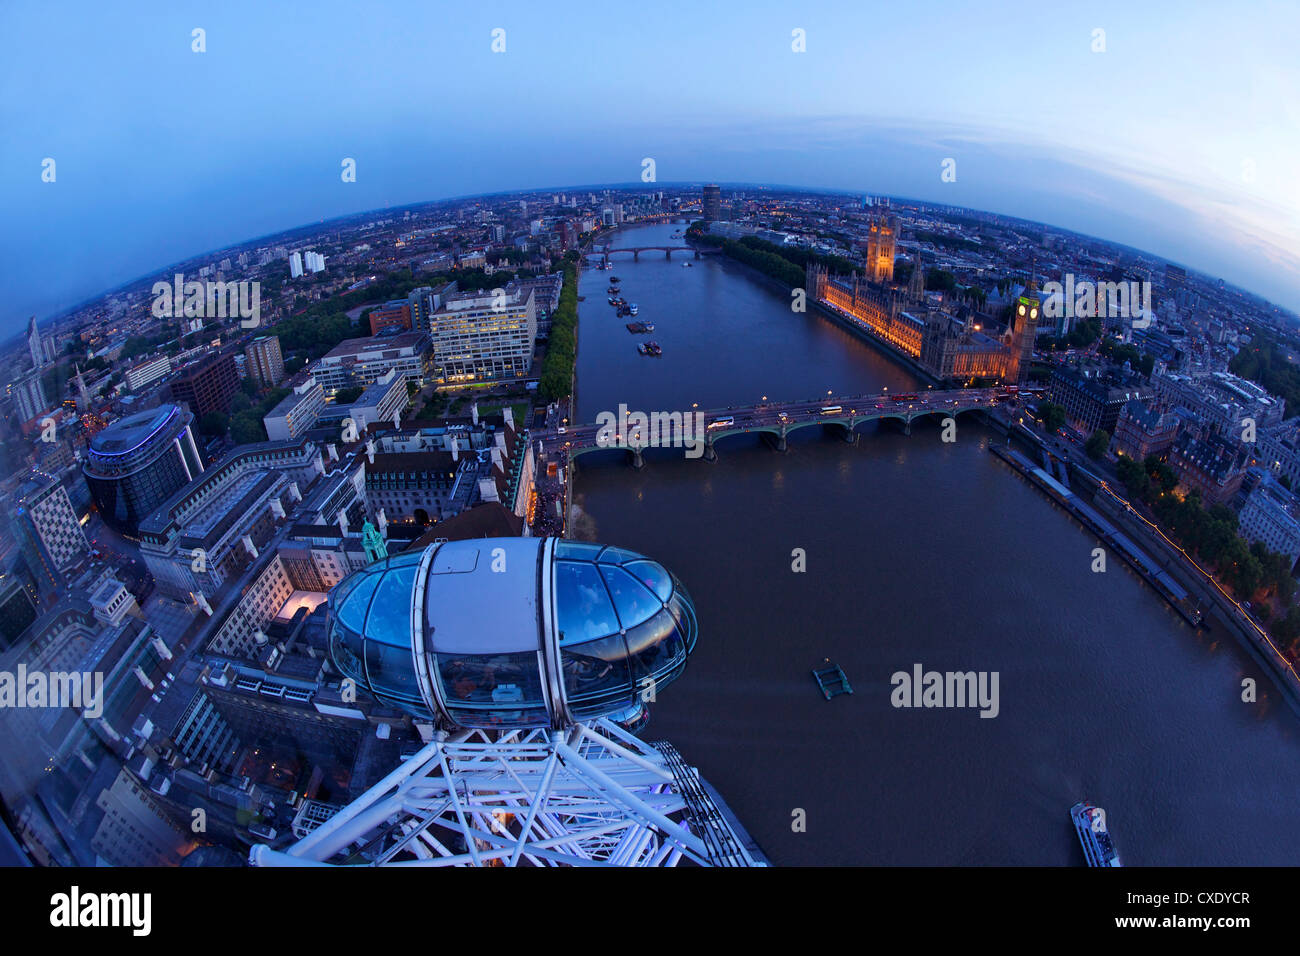 View of passenger pod capsule, Houses of Parliament, Big Ben and the River Thames from the London Eye at dusk, London, - Stock Image